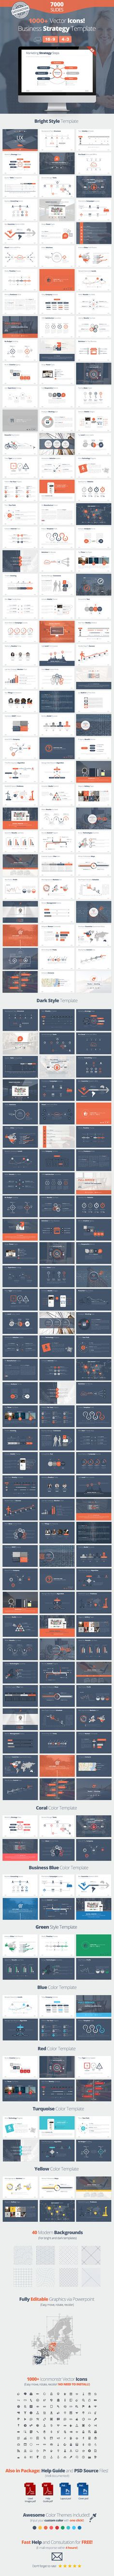 Business Strategy Google Slides Presentation Template. Download here: http://graphicriver.net/item/business-strategy-google-slides-template/13025685?s_rank=82&ref=yinkira